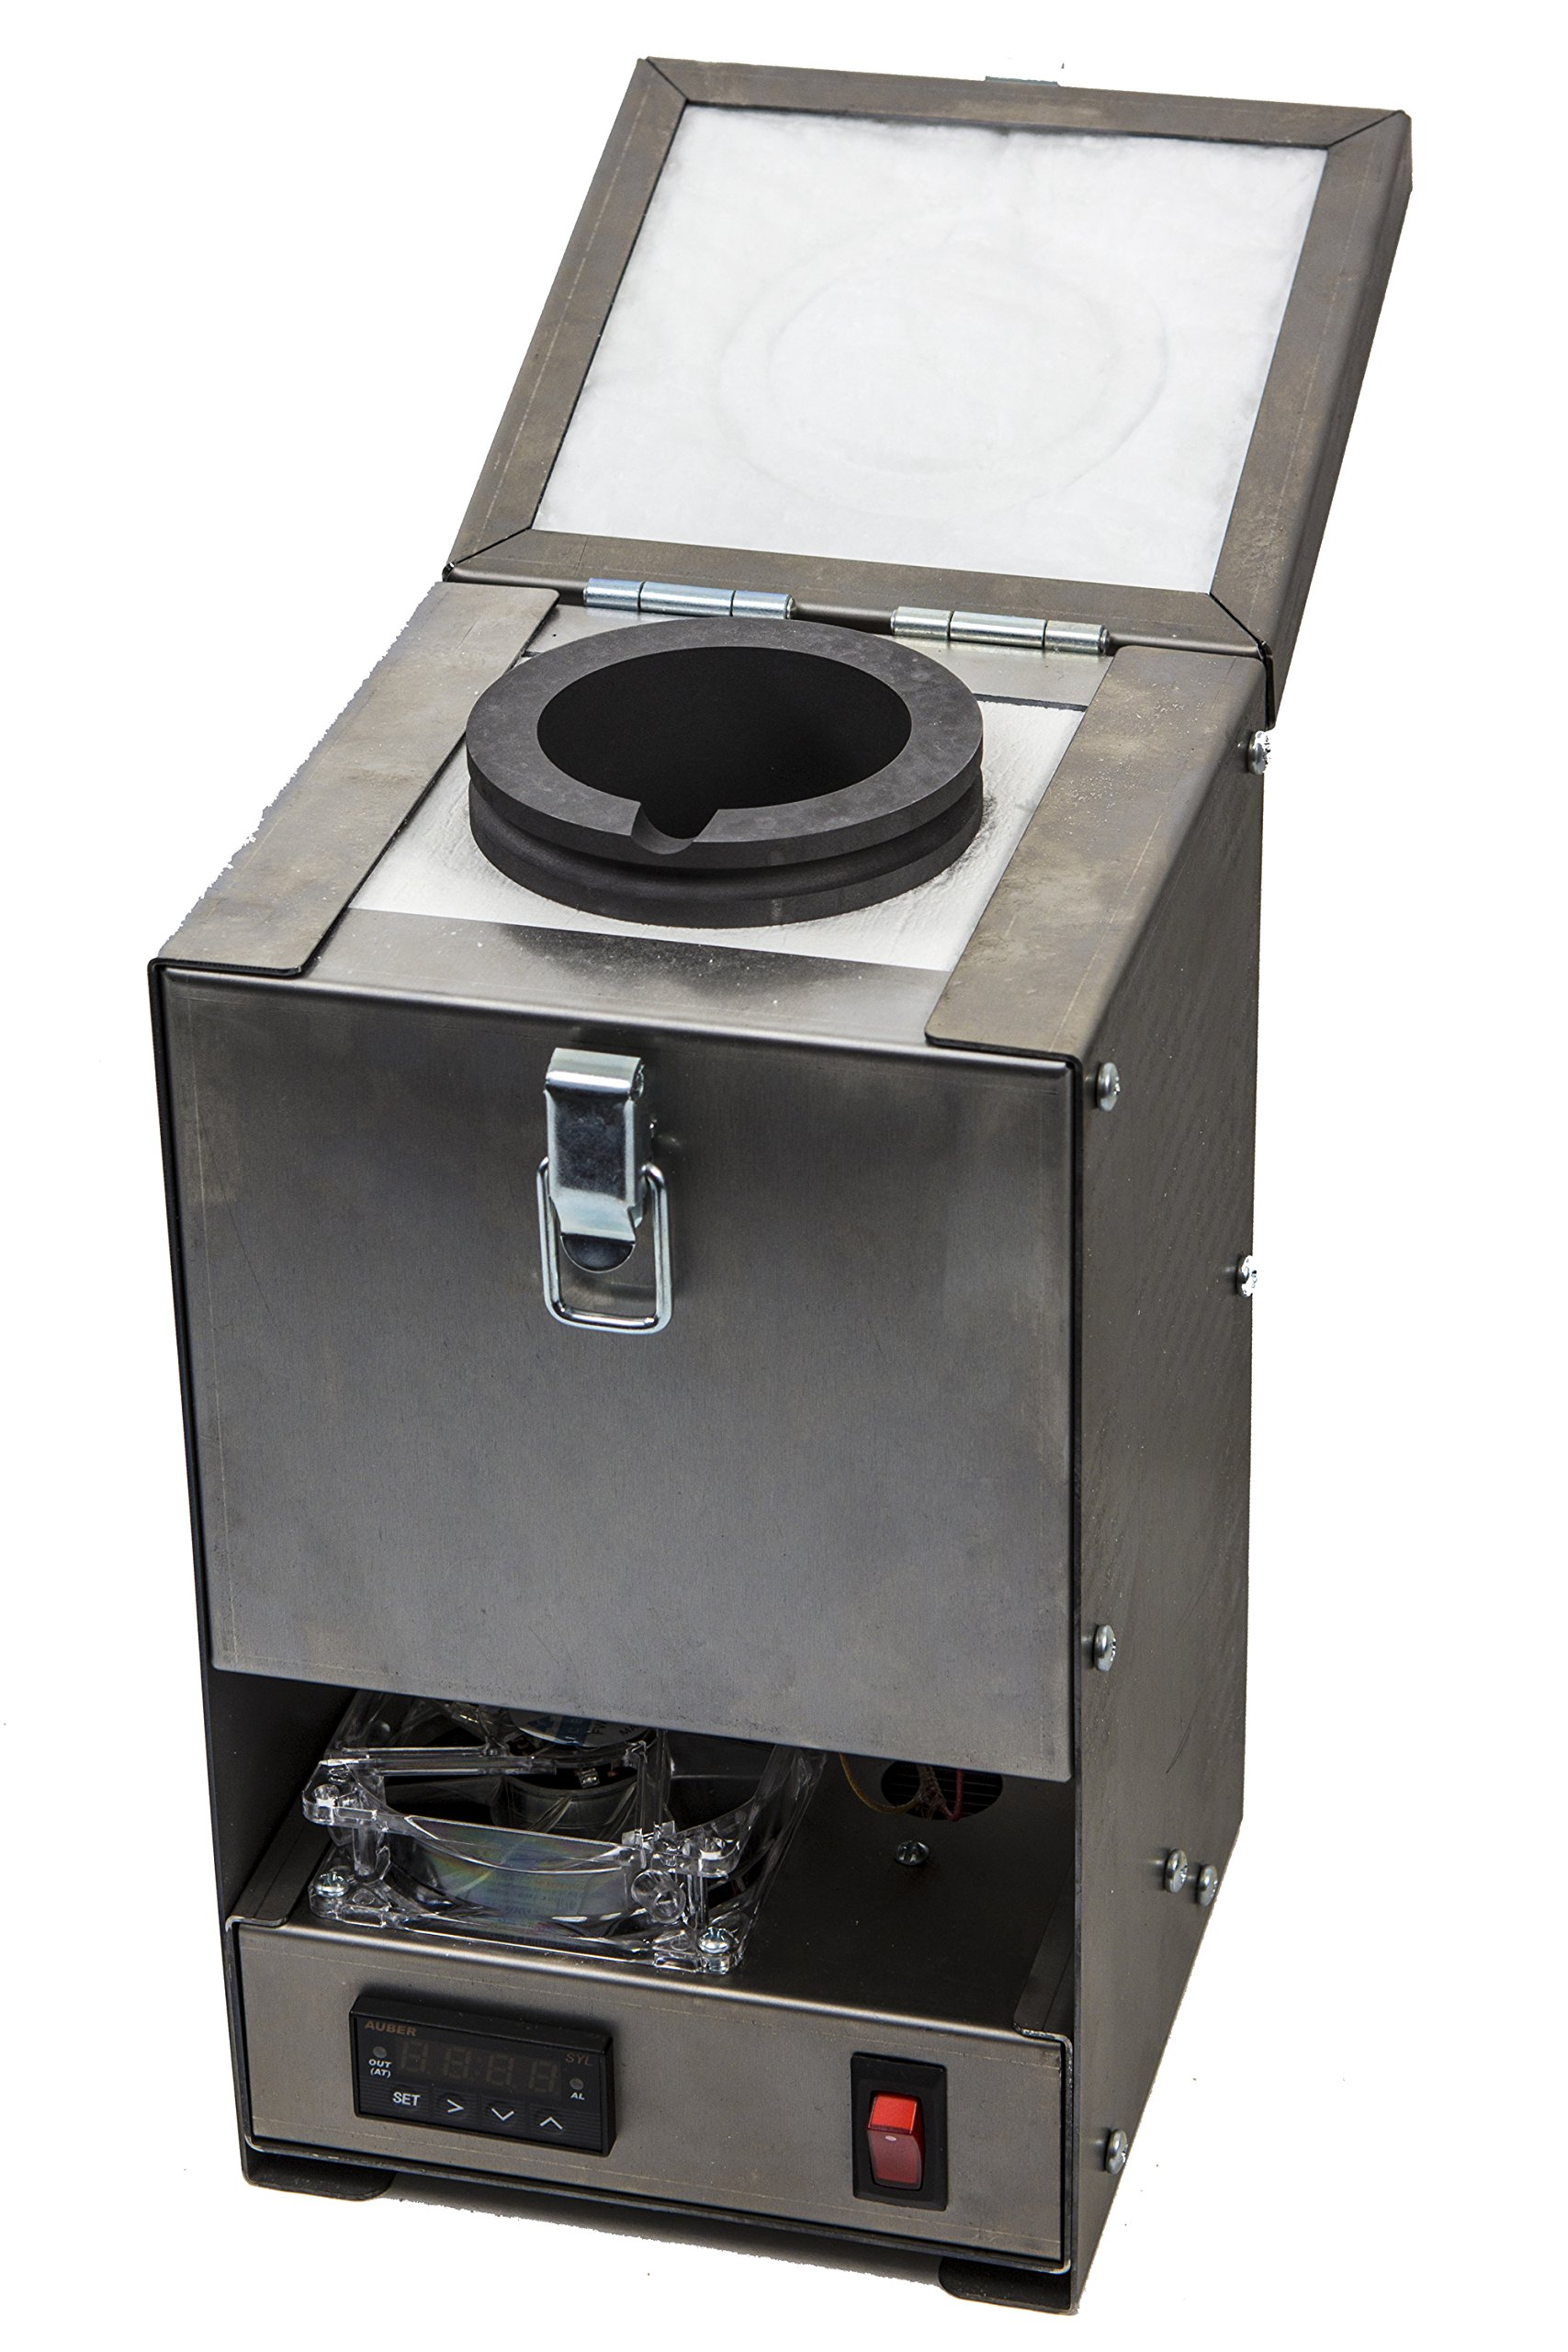 Quikmelt Pro-60oz Electric Kiln with Digital Temperature Controller. Perfect for Metal Casting & Refining, Melting Gold, Silver, Copper, More...